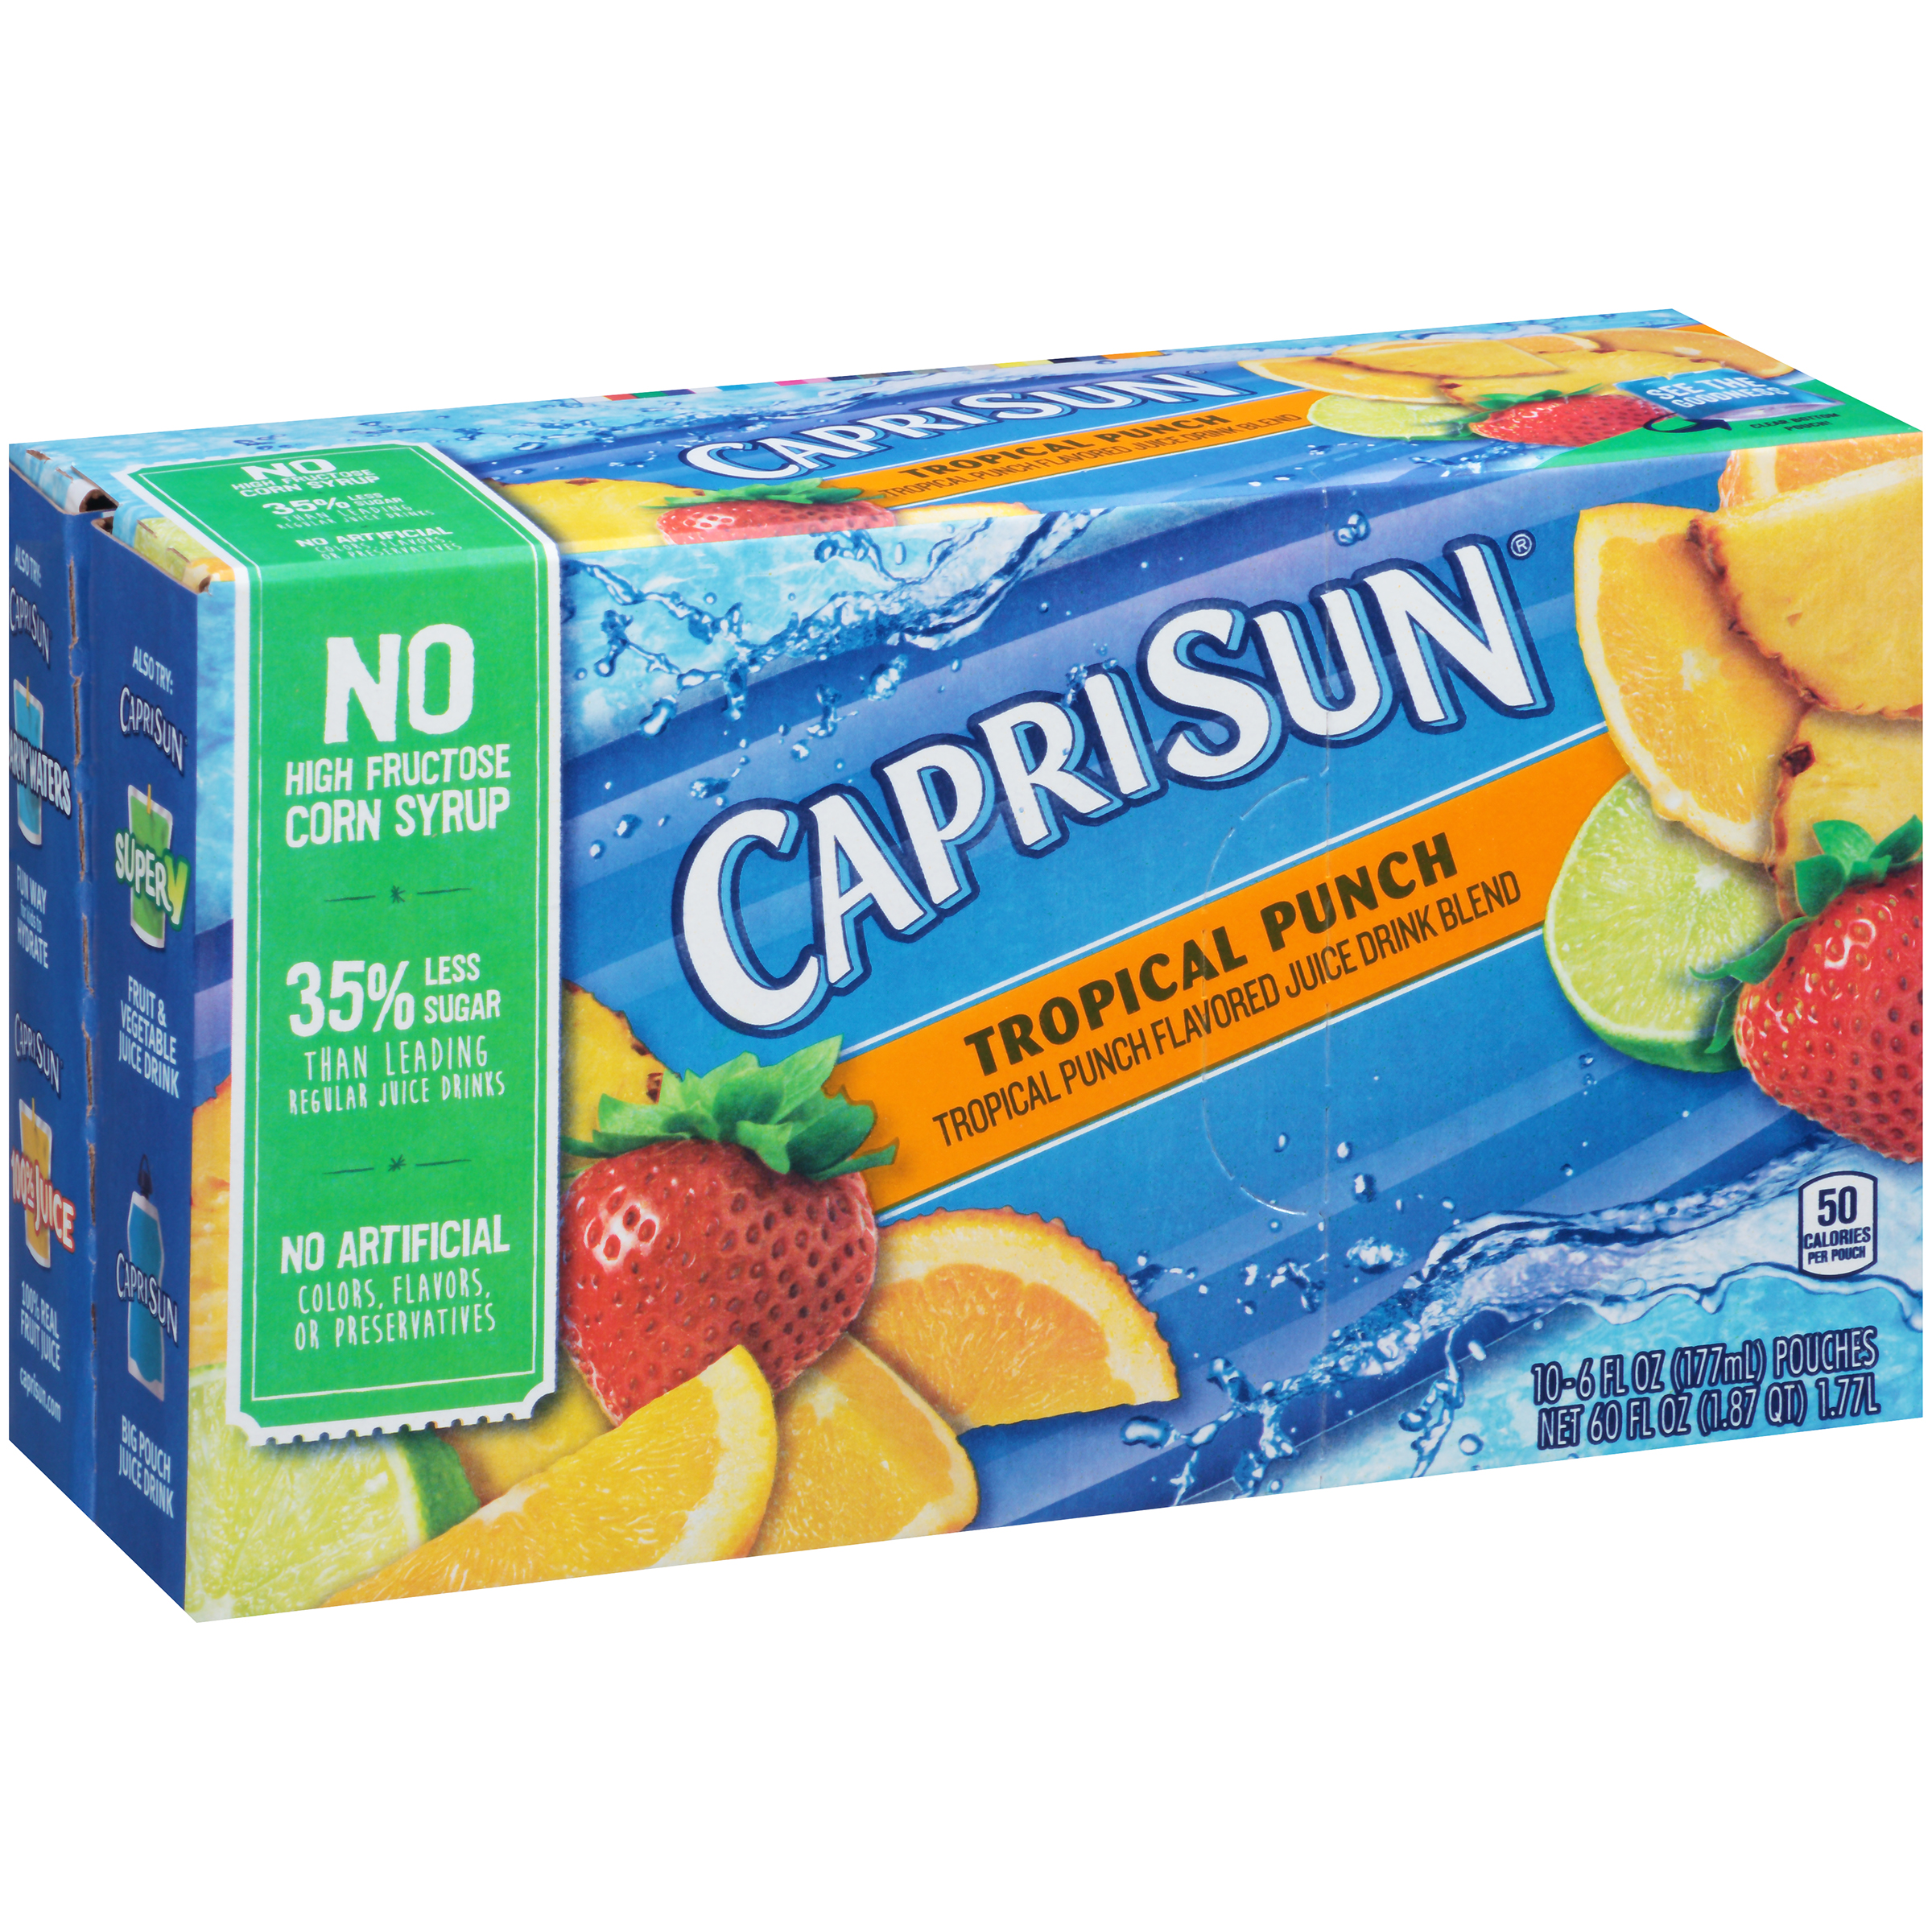 Capri Sun Flavored Juice Drink Tropical Punch - 10 CT